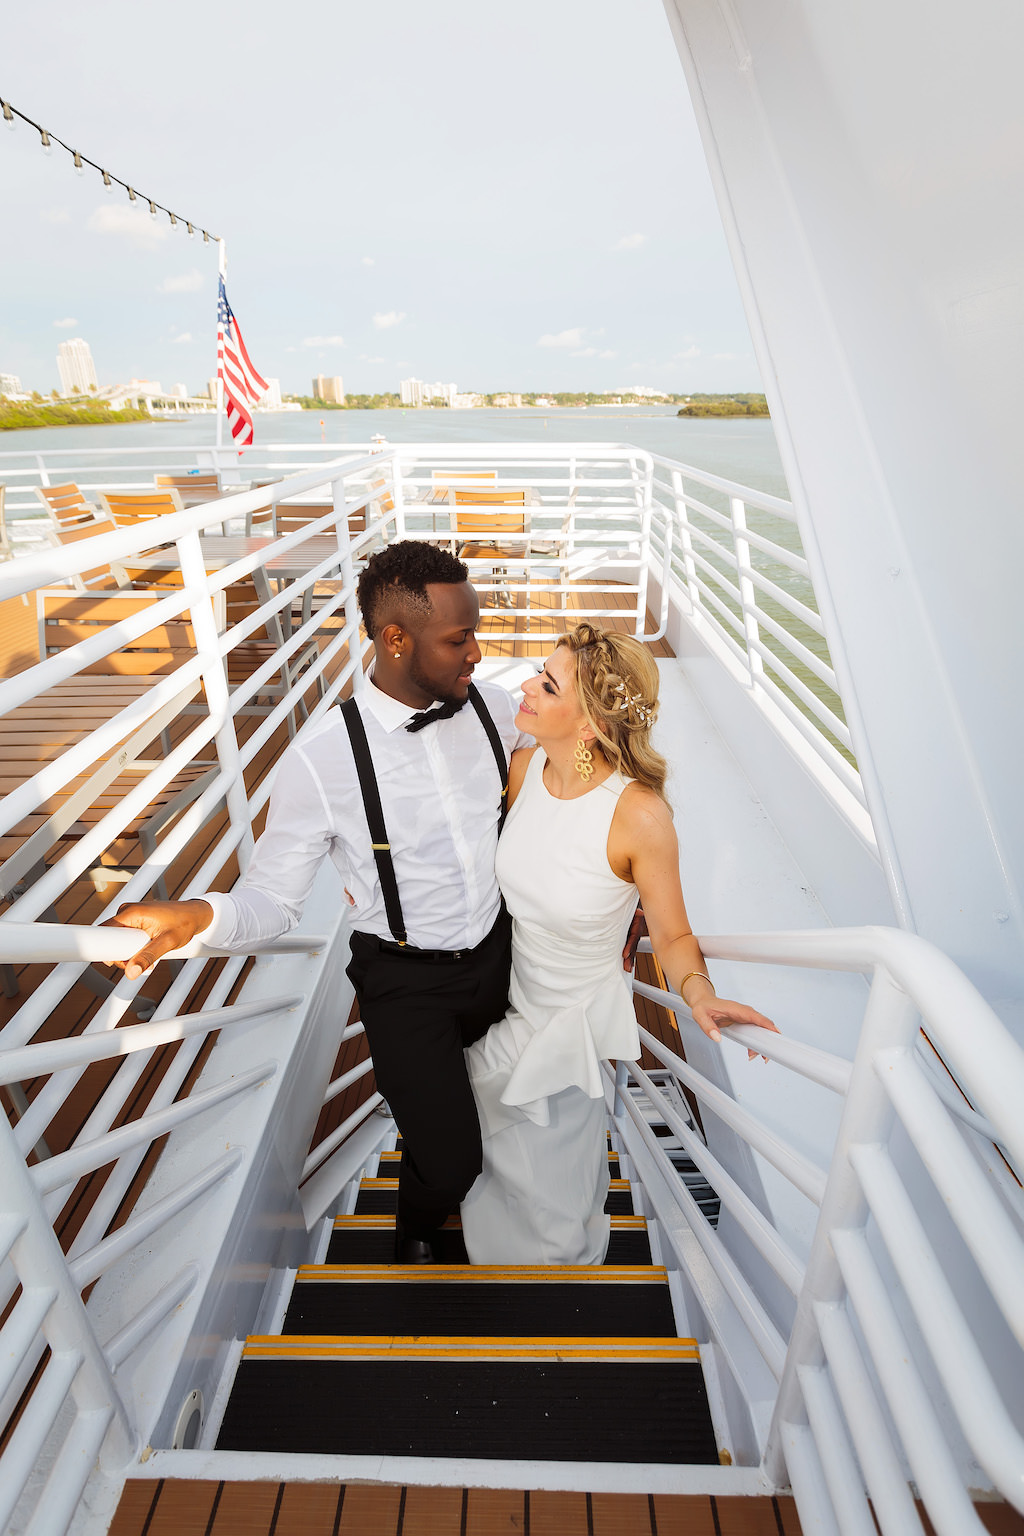 Florida Bride and Groom Wedding Portrait on Staircase of Unique Waterfront Tampa Wedding Venue The Yacht Starship IV